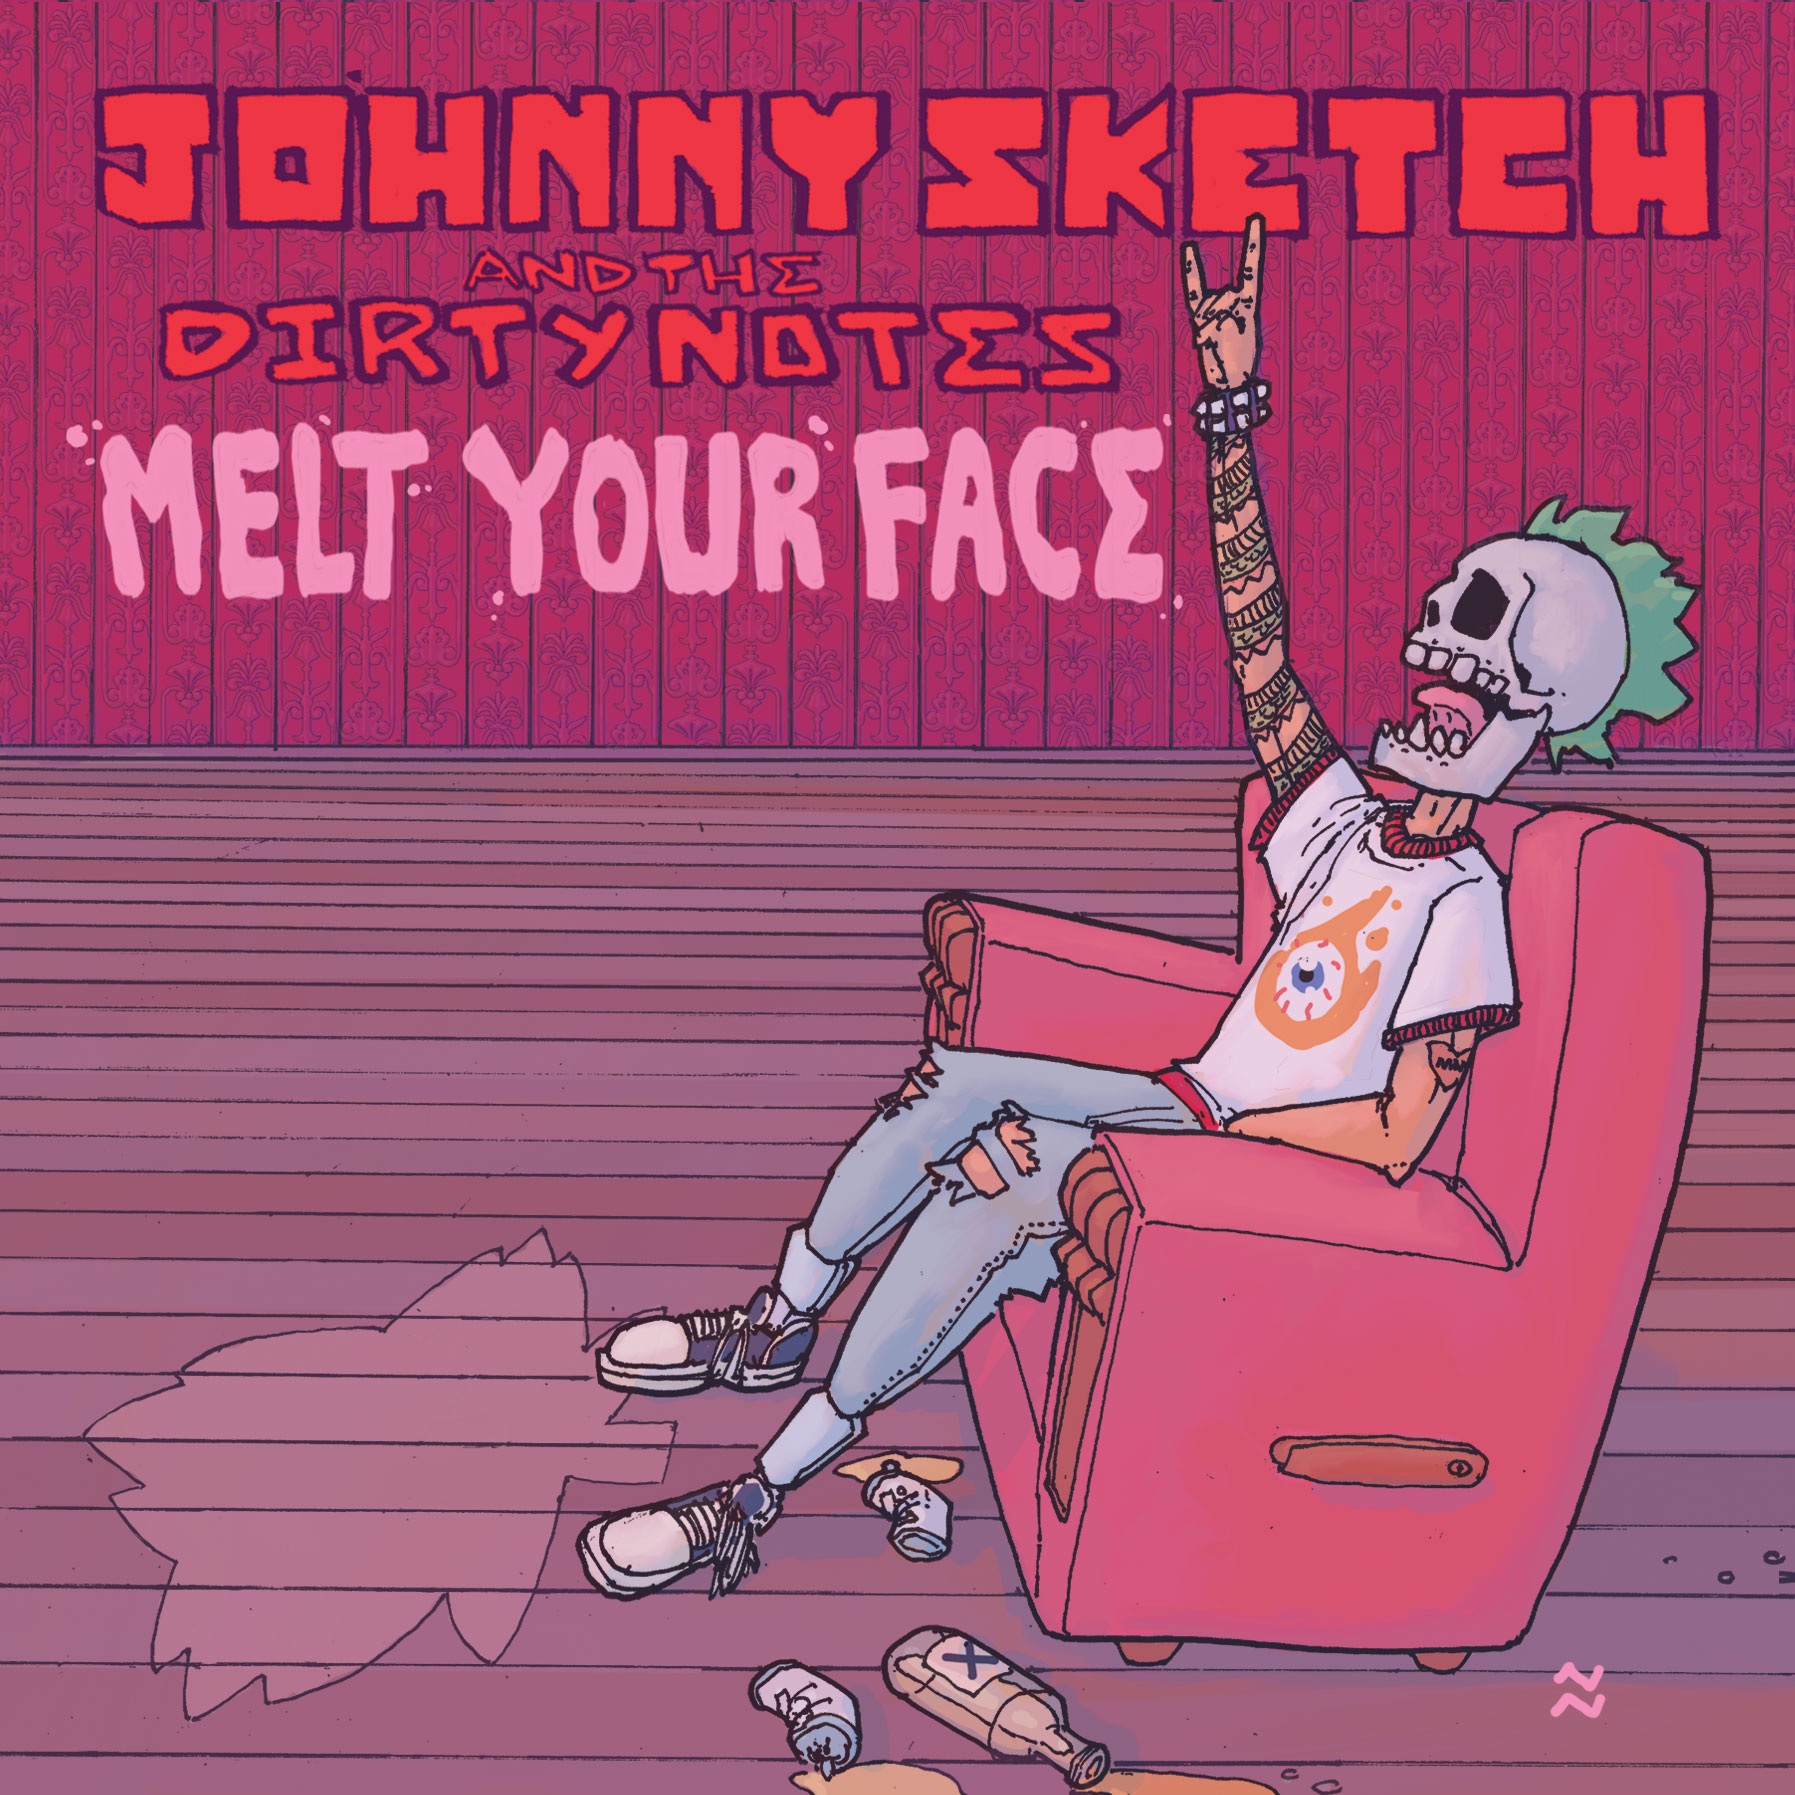 Johnny Sketch & The Dirty Notes